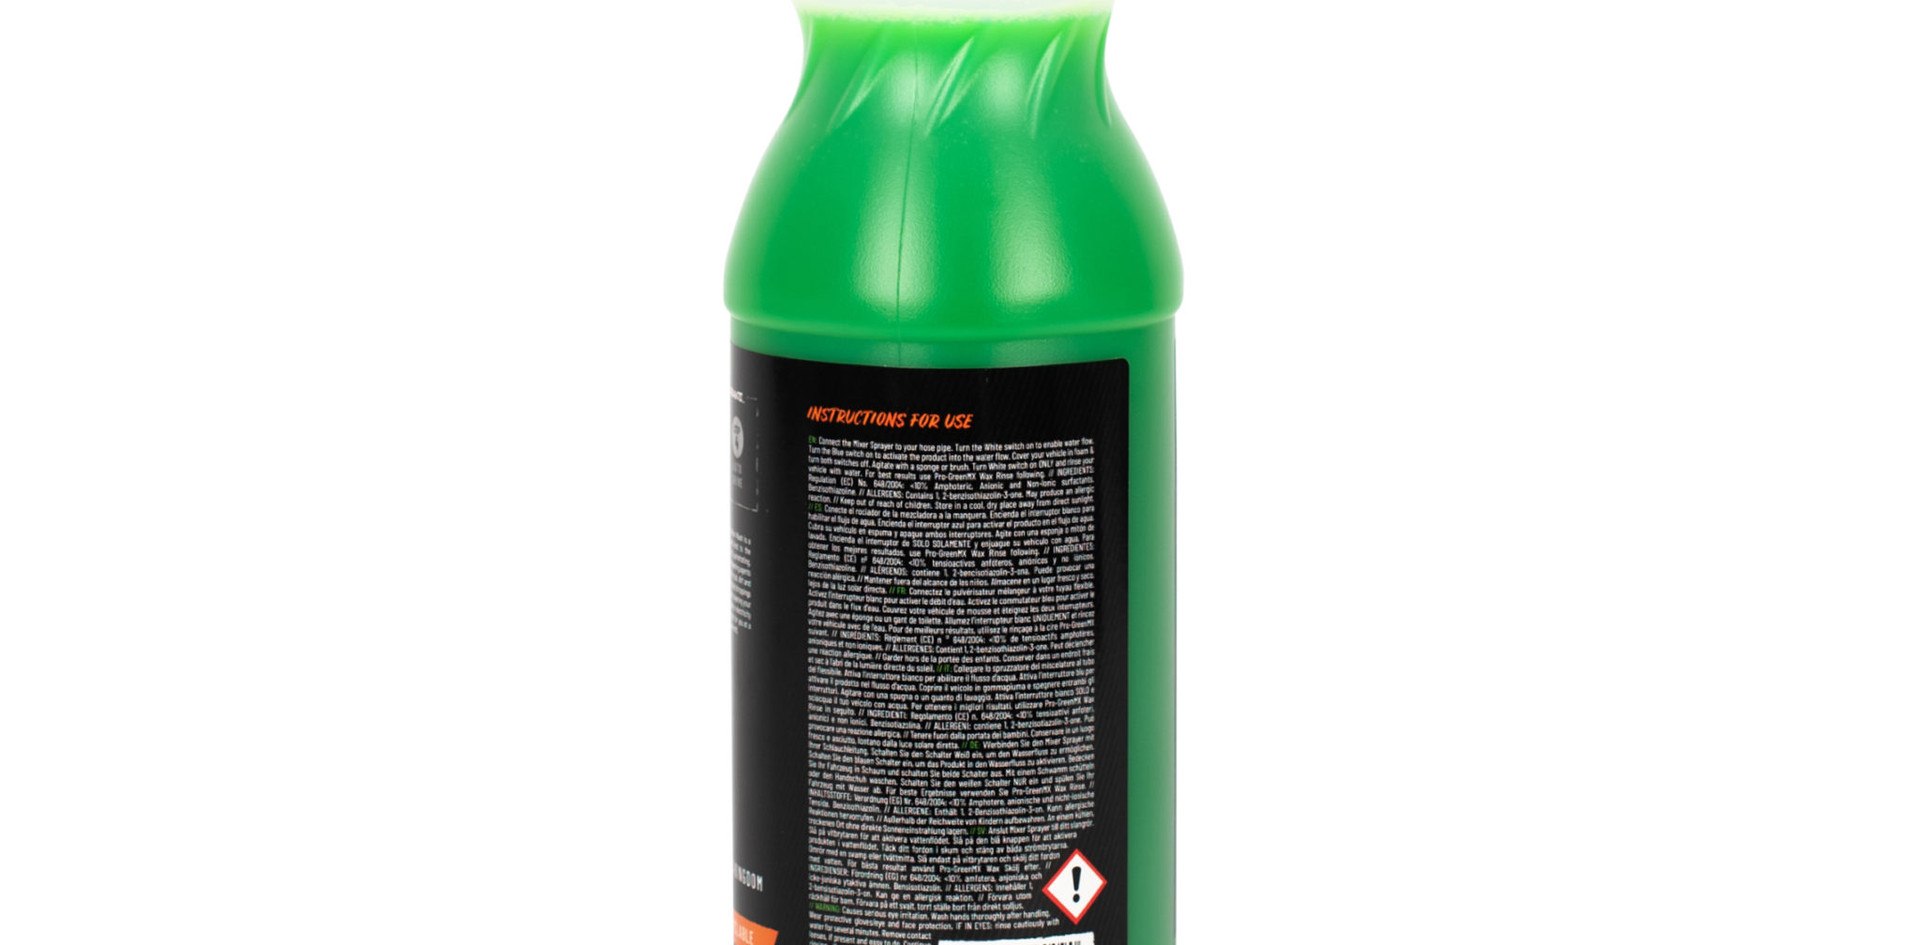 PRO GREEN MX 1L CONCENTRATED VEHICLE WASH